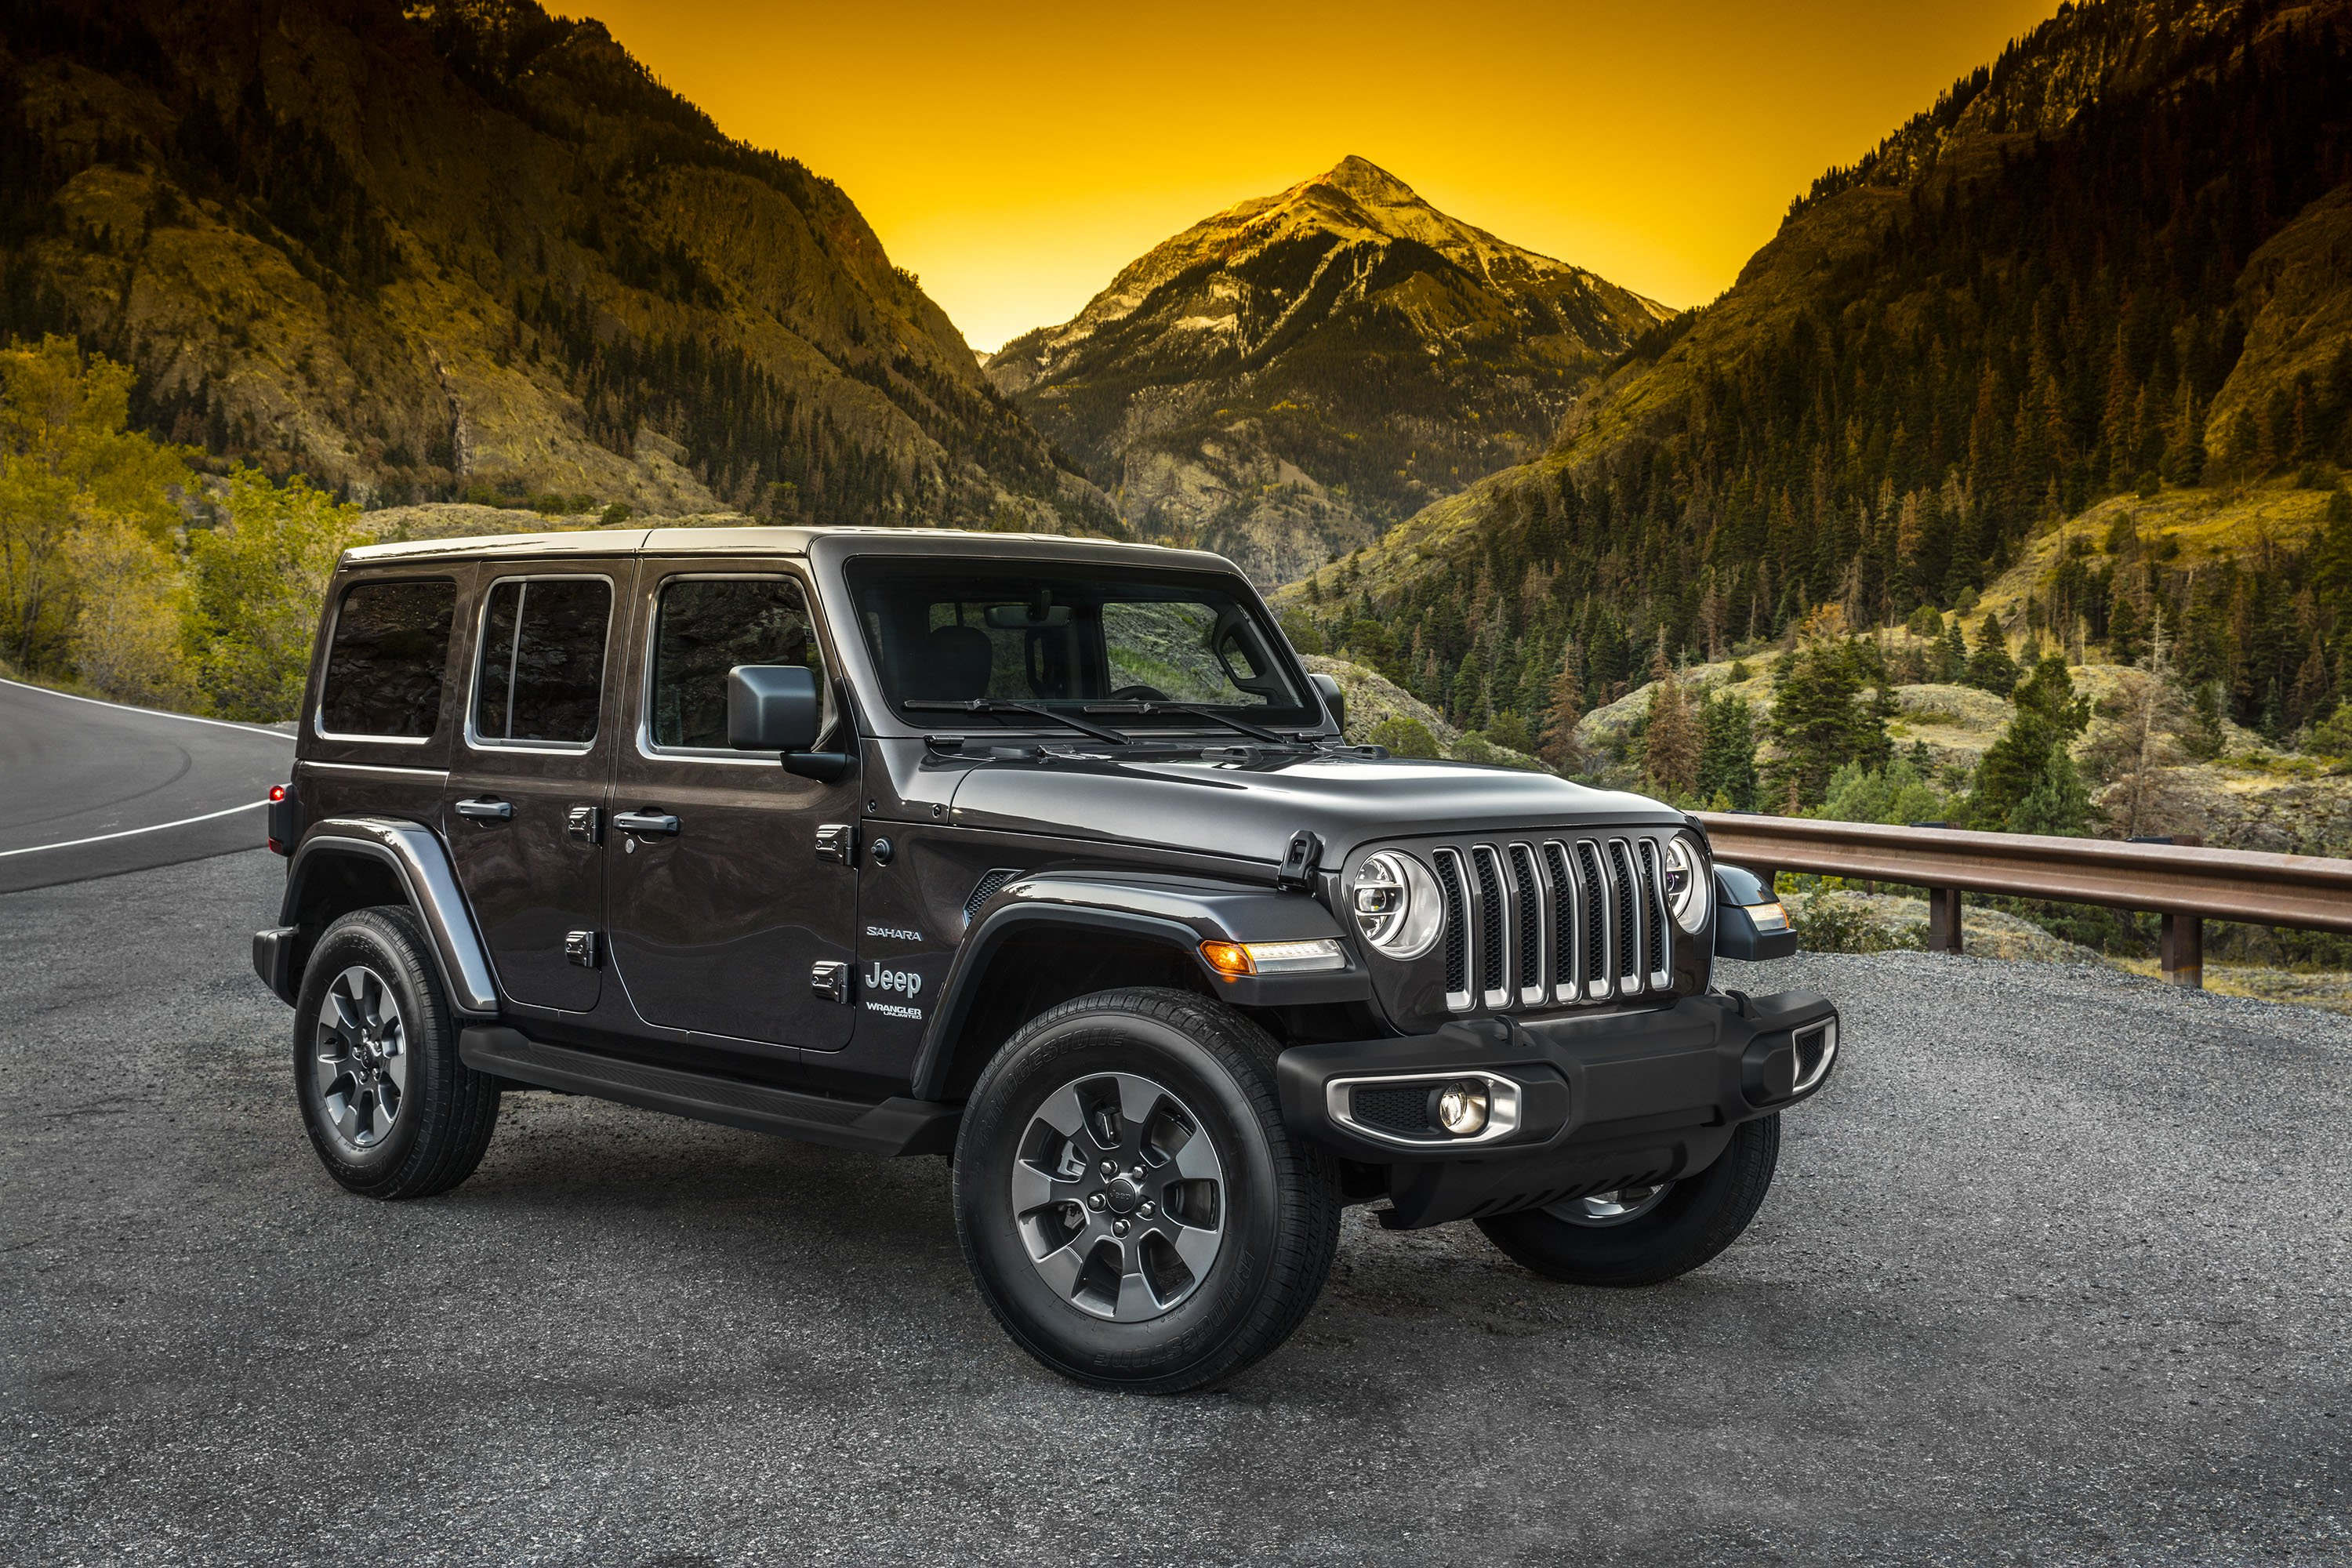 85 The Best 2020 The Jeep Wrangler New Review